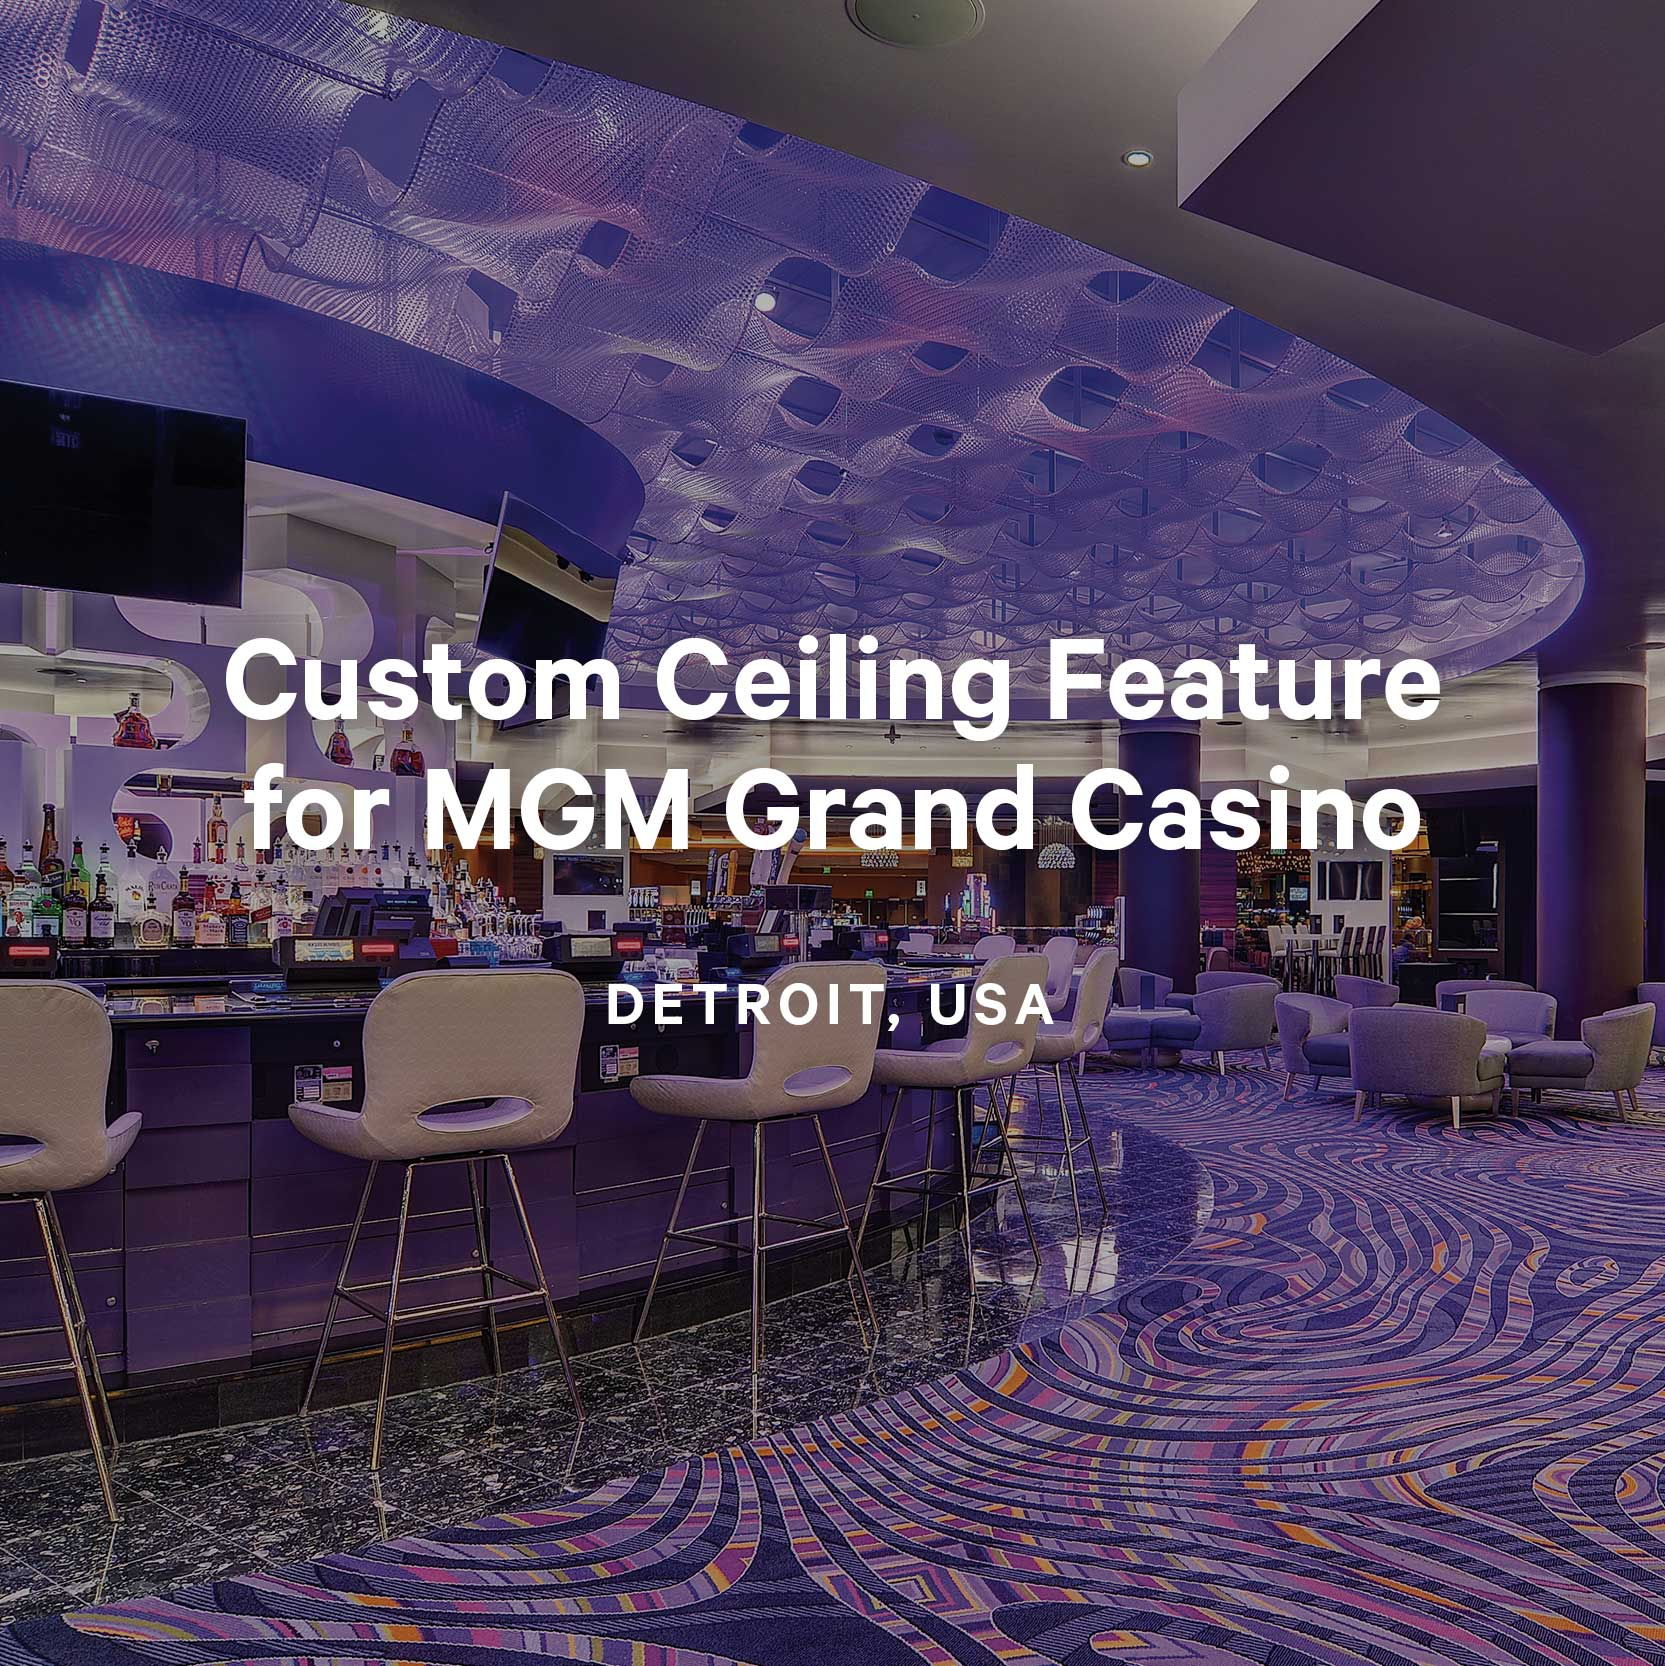 Custom Ceiling Feature for MGM Grand Casino